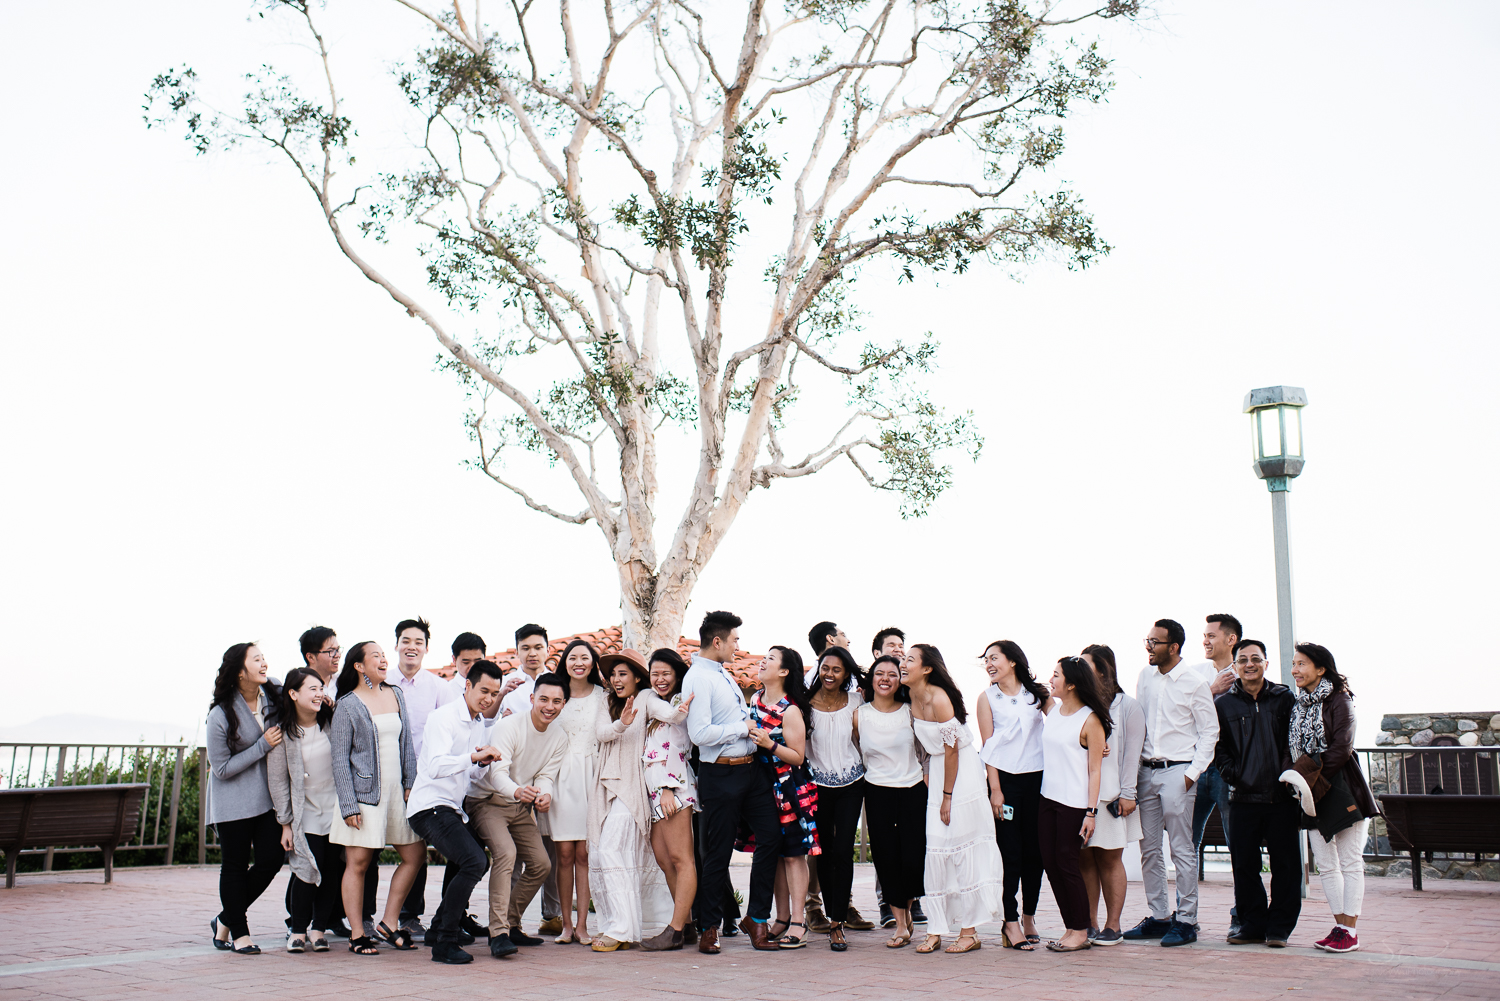 Big group photo. Cliffside proposal & engagement in Dana Point | Stanley Wu Photography Portrait & Wedding Photographer | Los Angeles, Orange County, Southern California